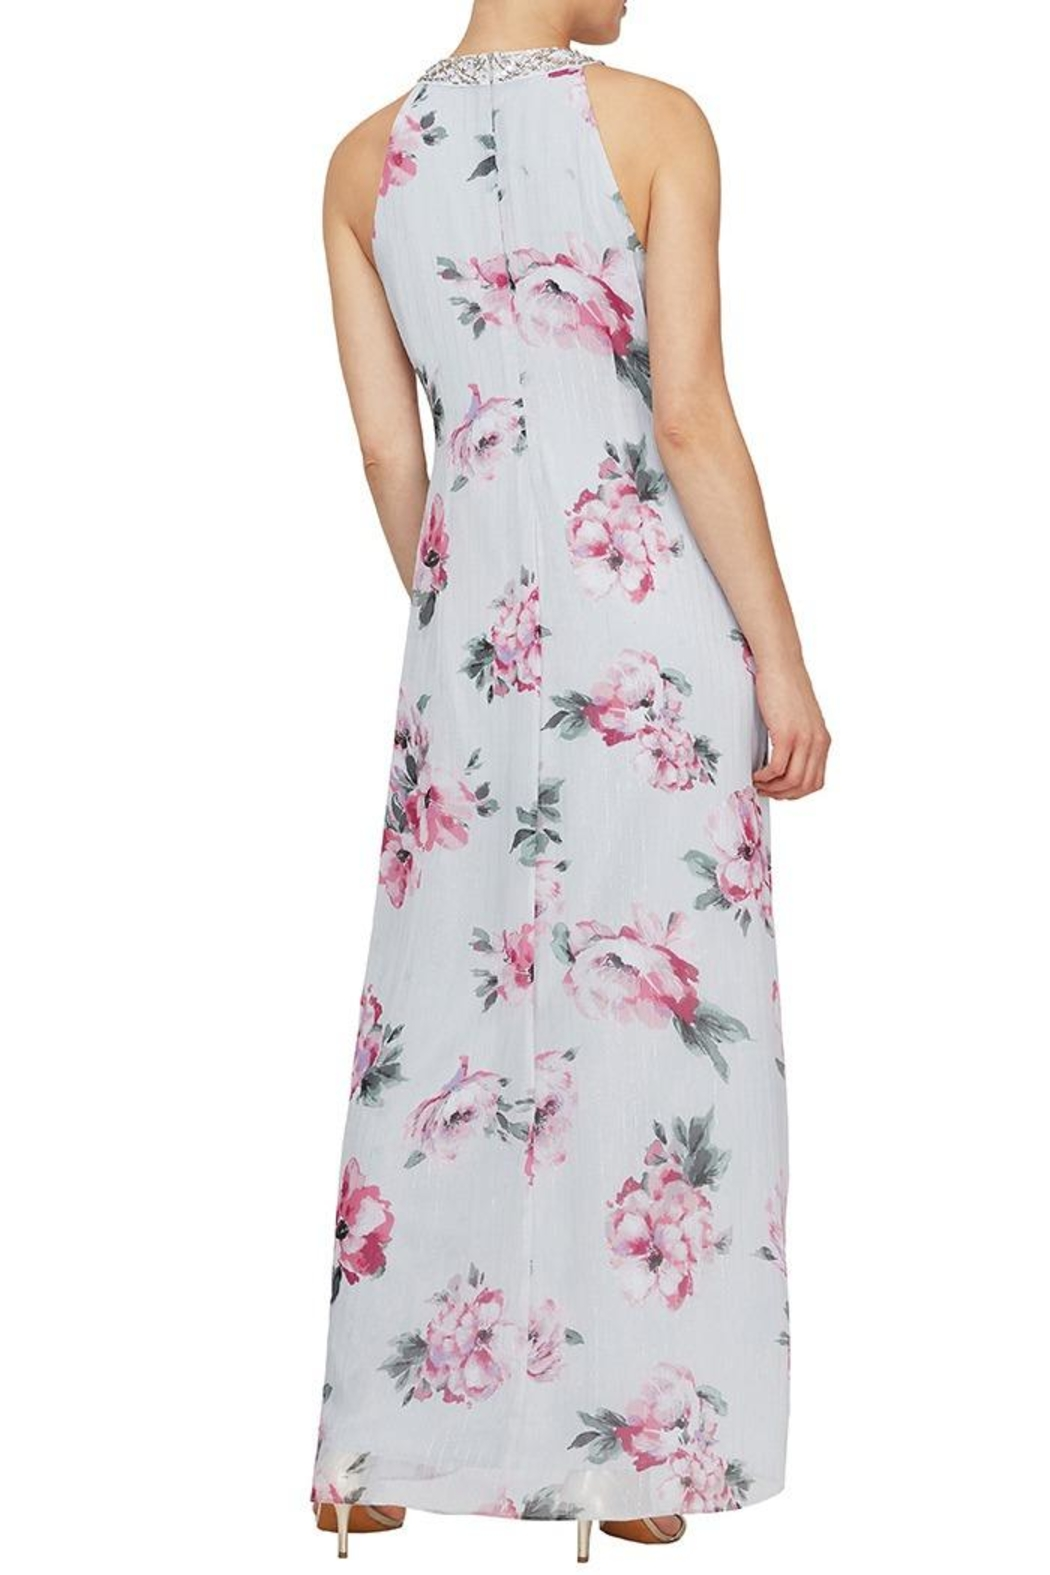 Elegance by Sarah Ruhs Floral Beaded Maxi - Front Full Image